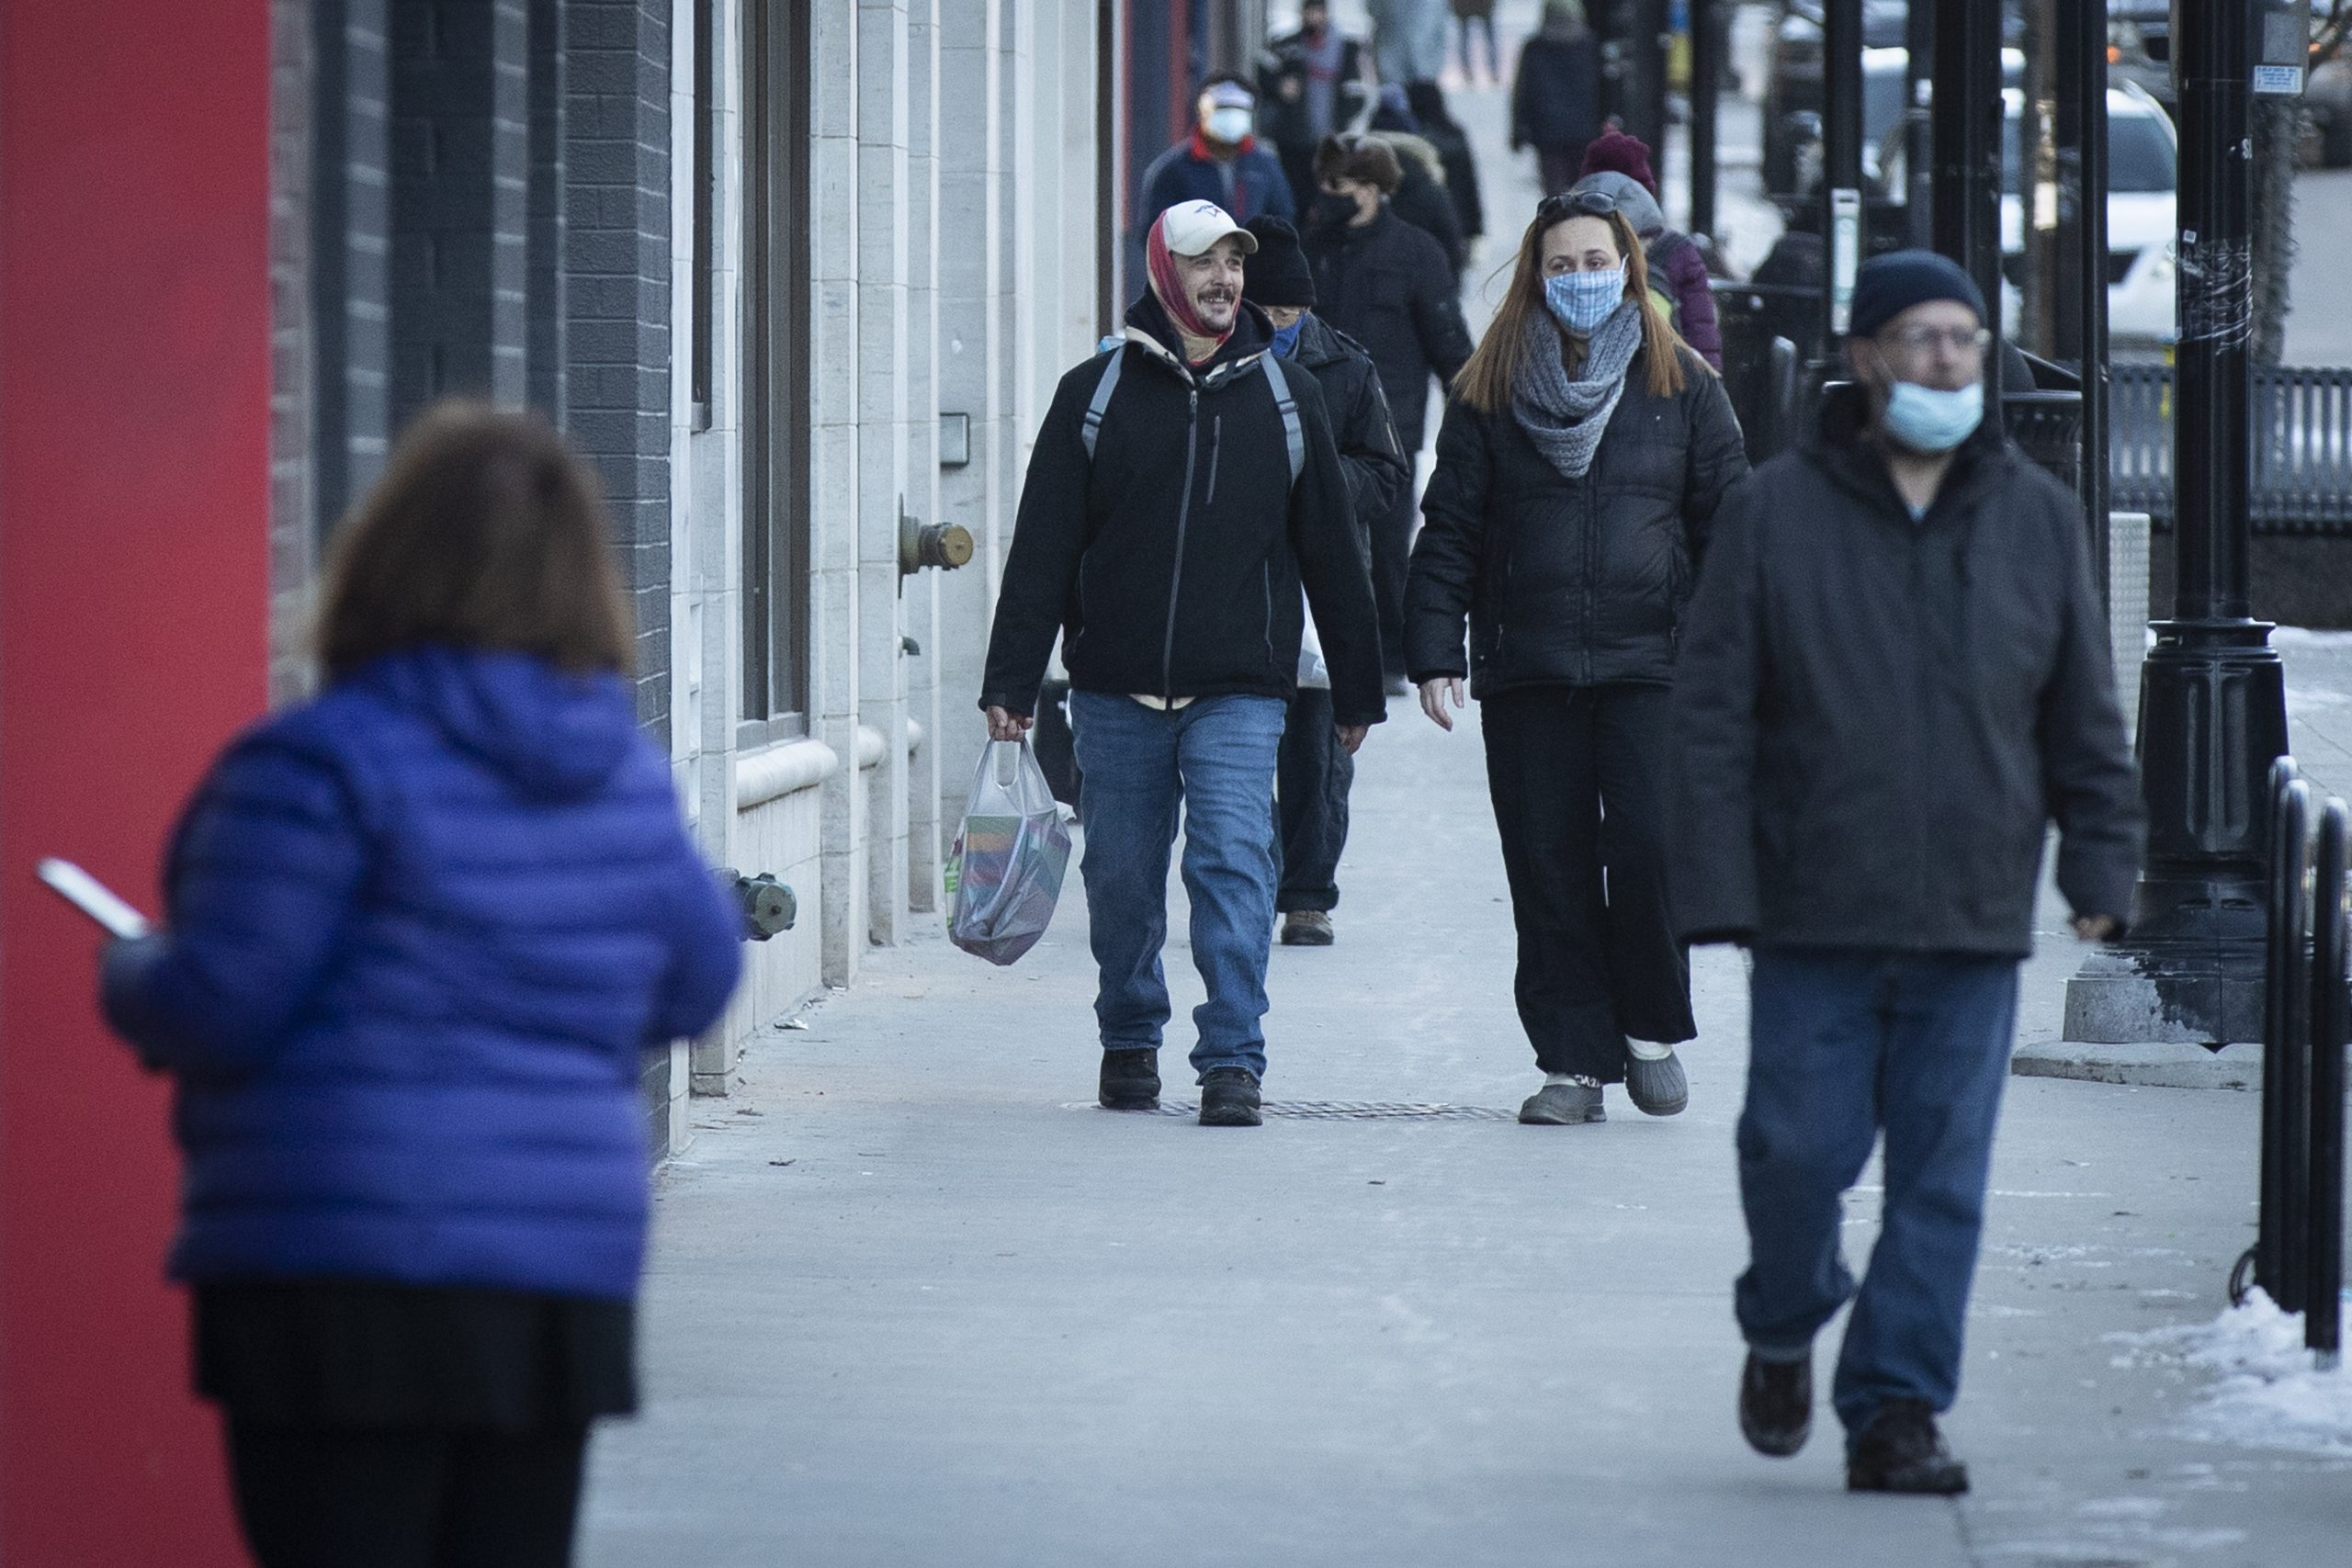 Ontario to announce new COVID restrictions; curfew not expected